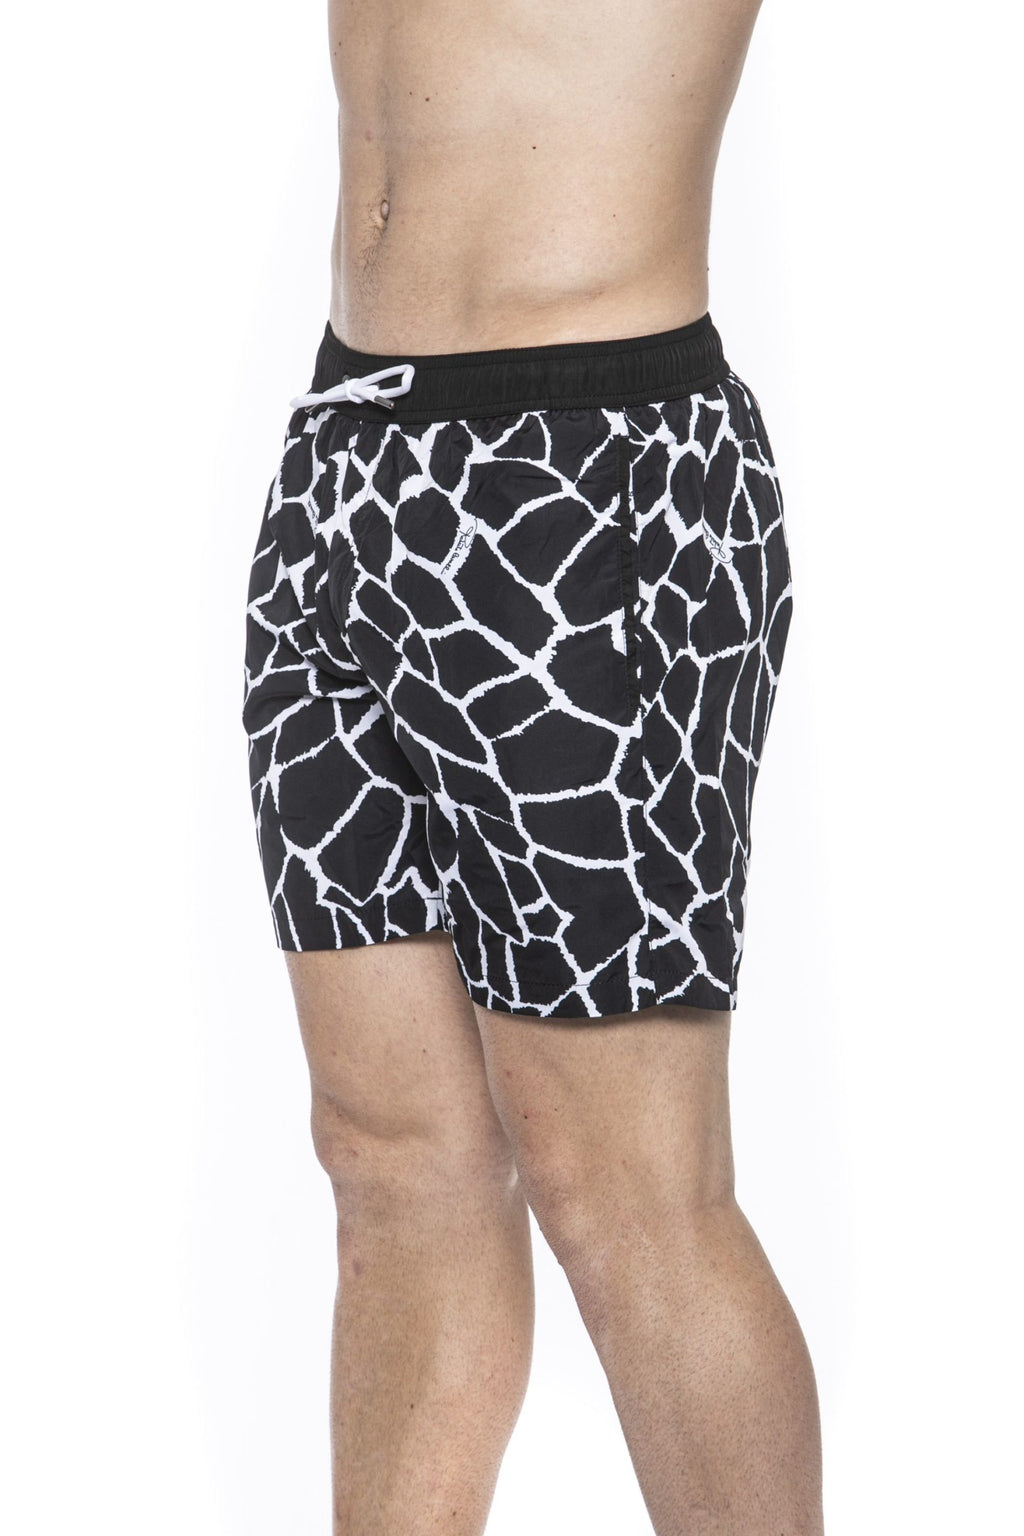 Black Beachwear Boxer With Pockets. Giraffe Print. Internal Net. Back Pocket With Logo.